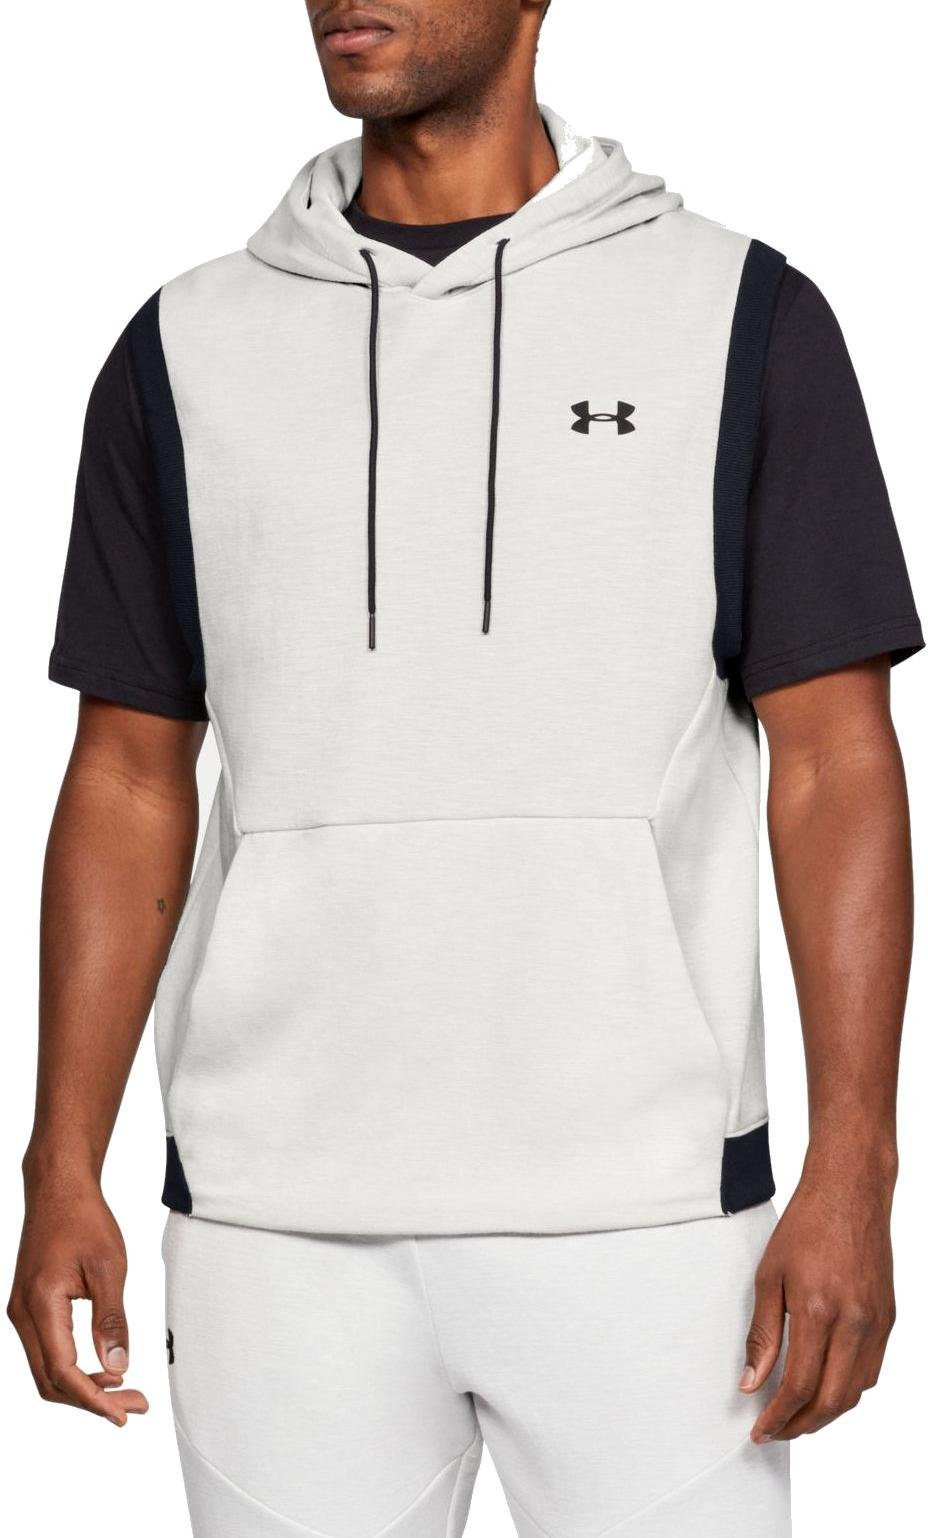 Felpe con cappuccio Under Armour Under Armour UNSTOPPABLE 2X KNIT SL